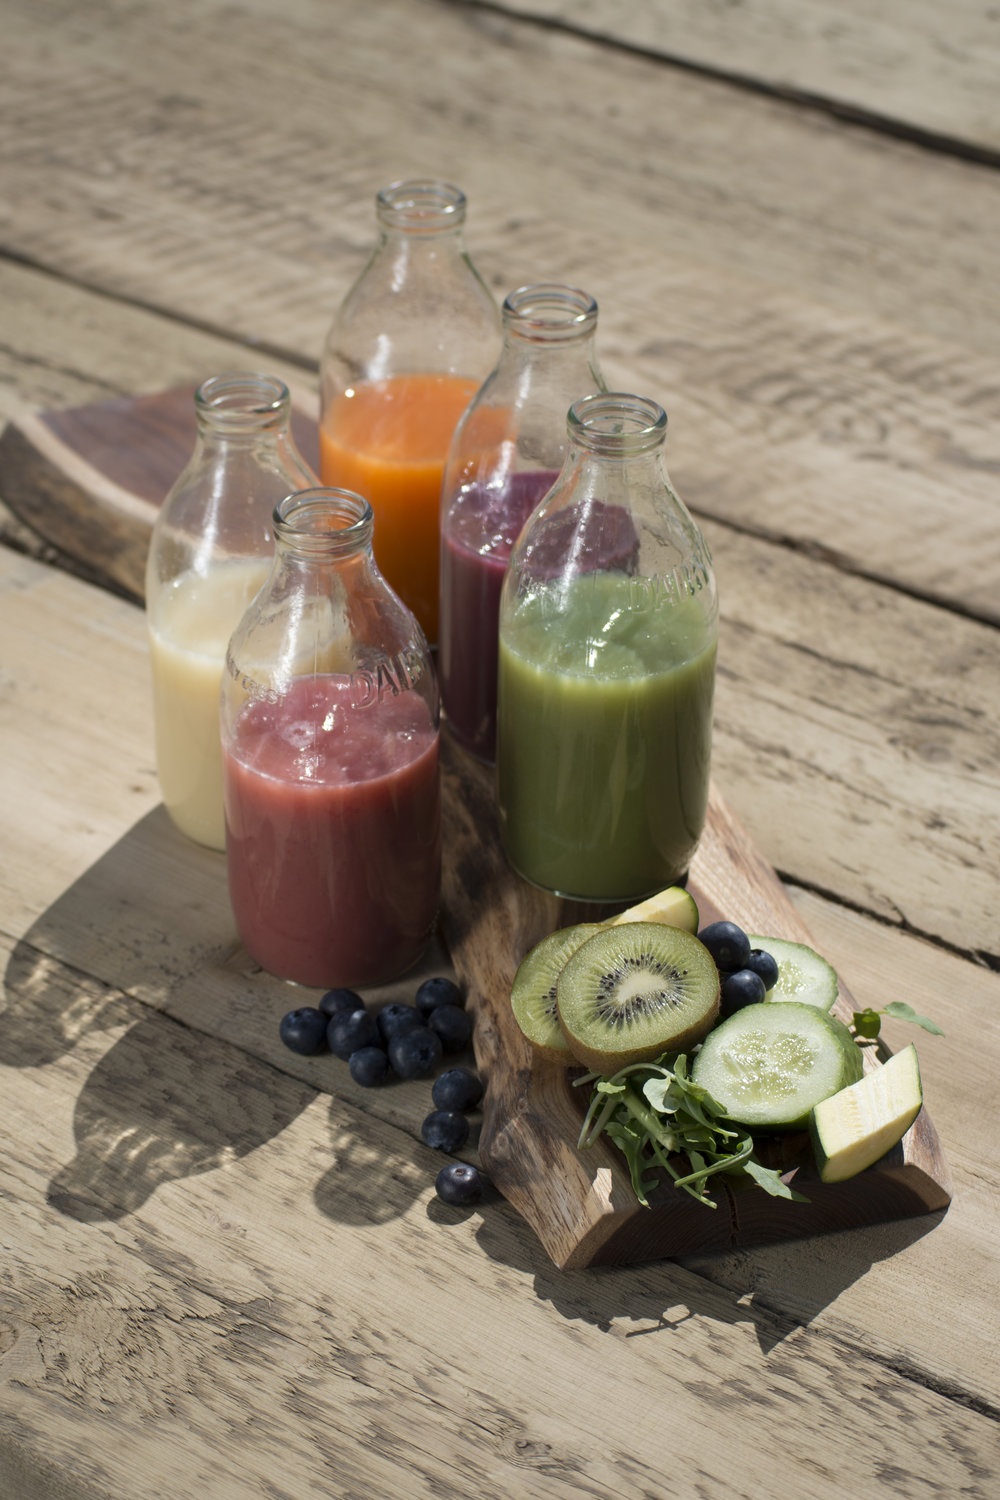 a fruit or vegetable smoothie (sipped not gulped) hits the spot as the night progresses! create your own or get one off the shelf...